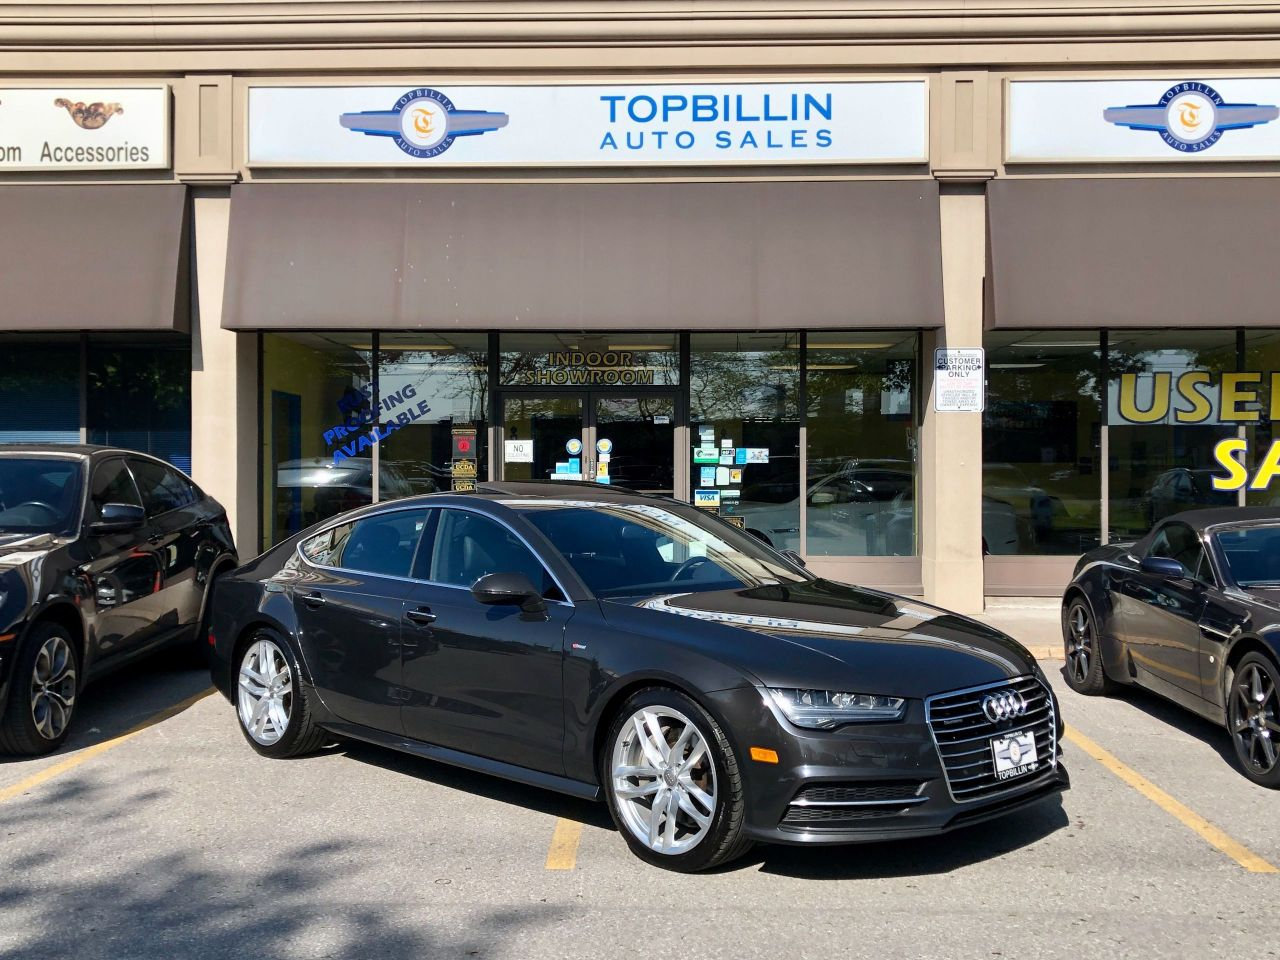 2016 Audi A7 3.0T Technik, Night Vision, HUD, S Line